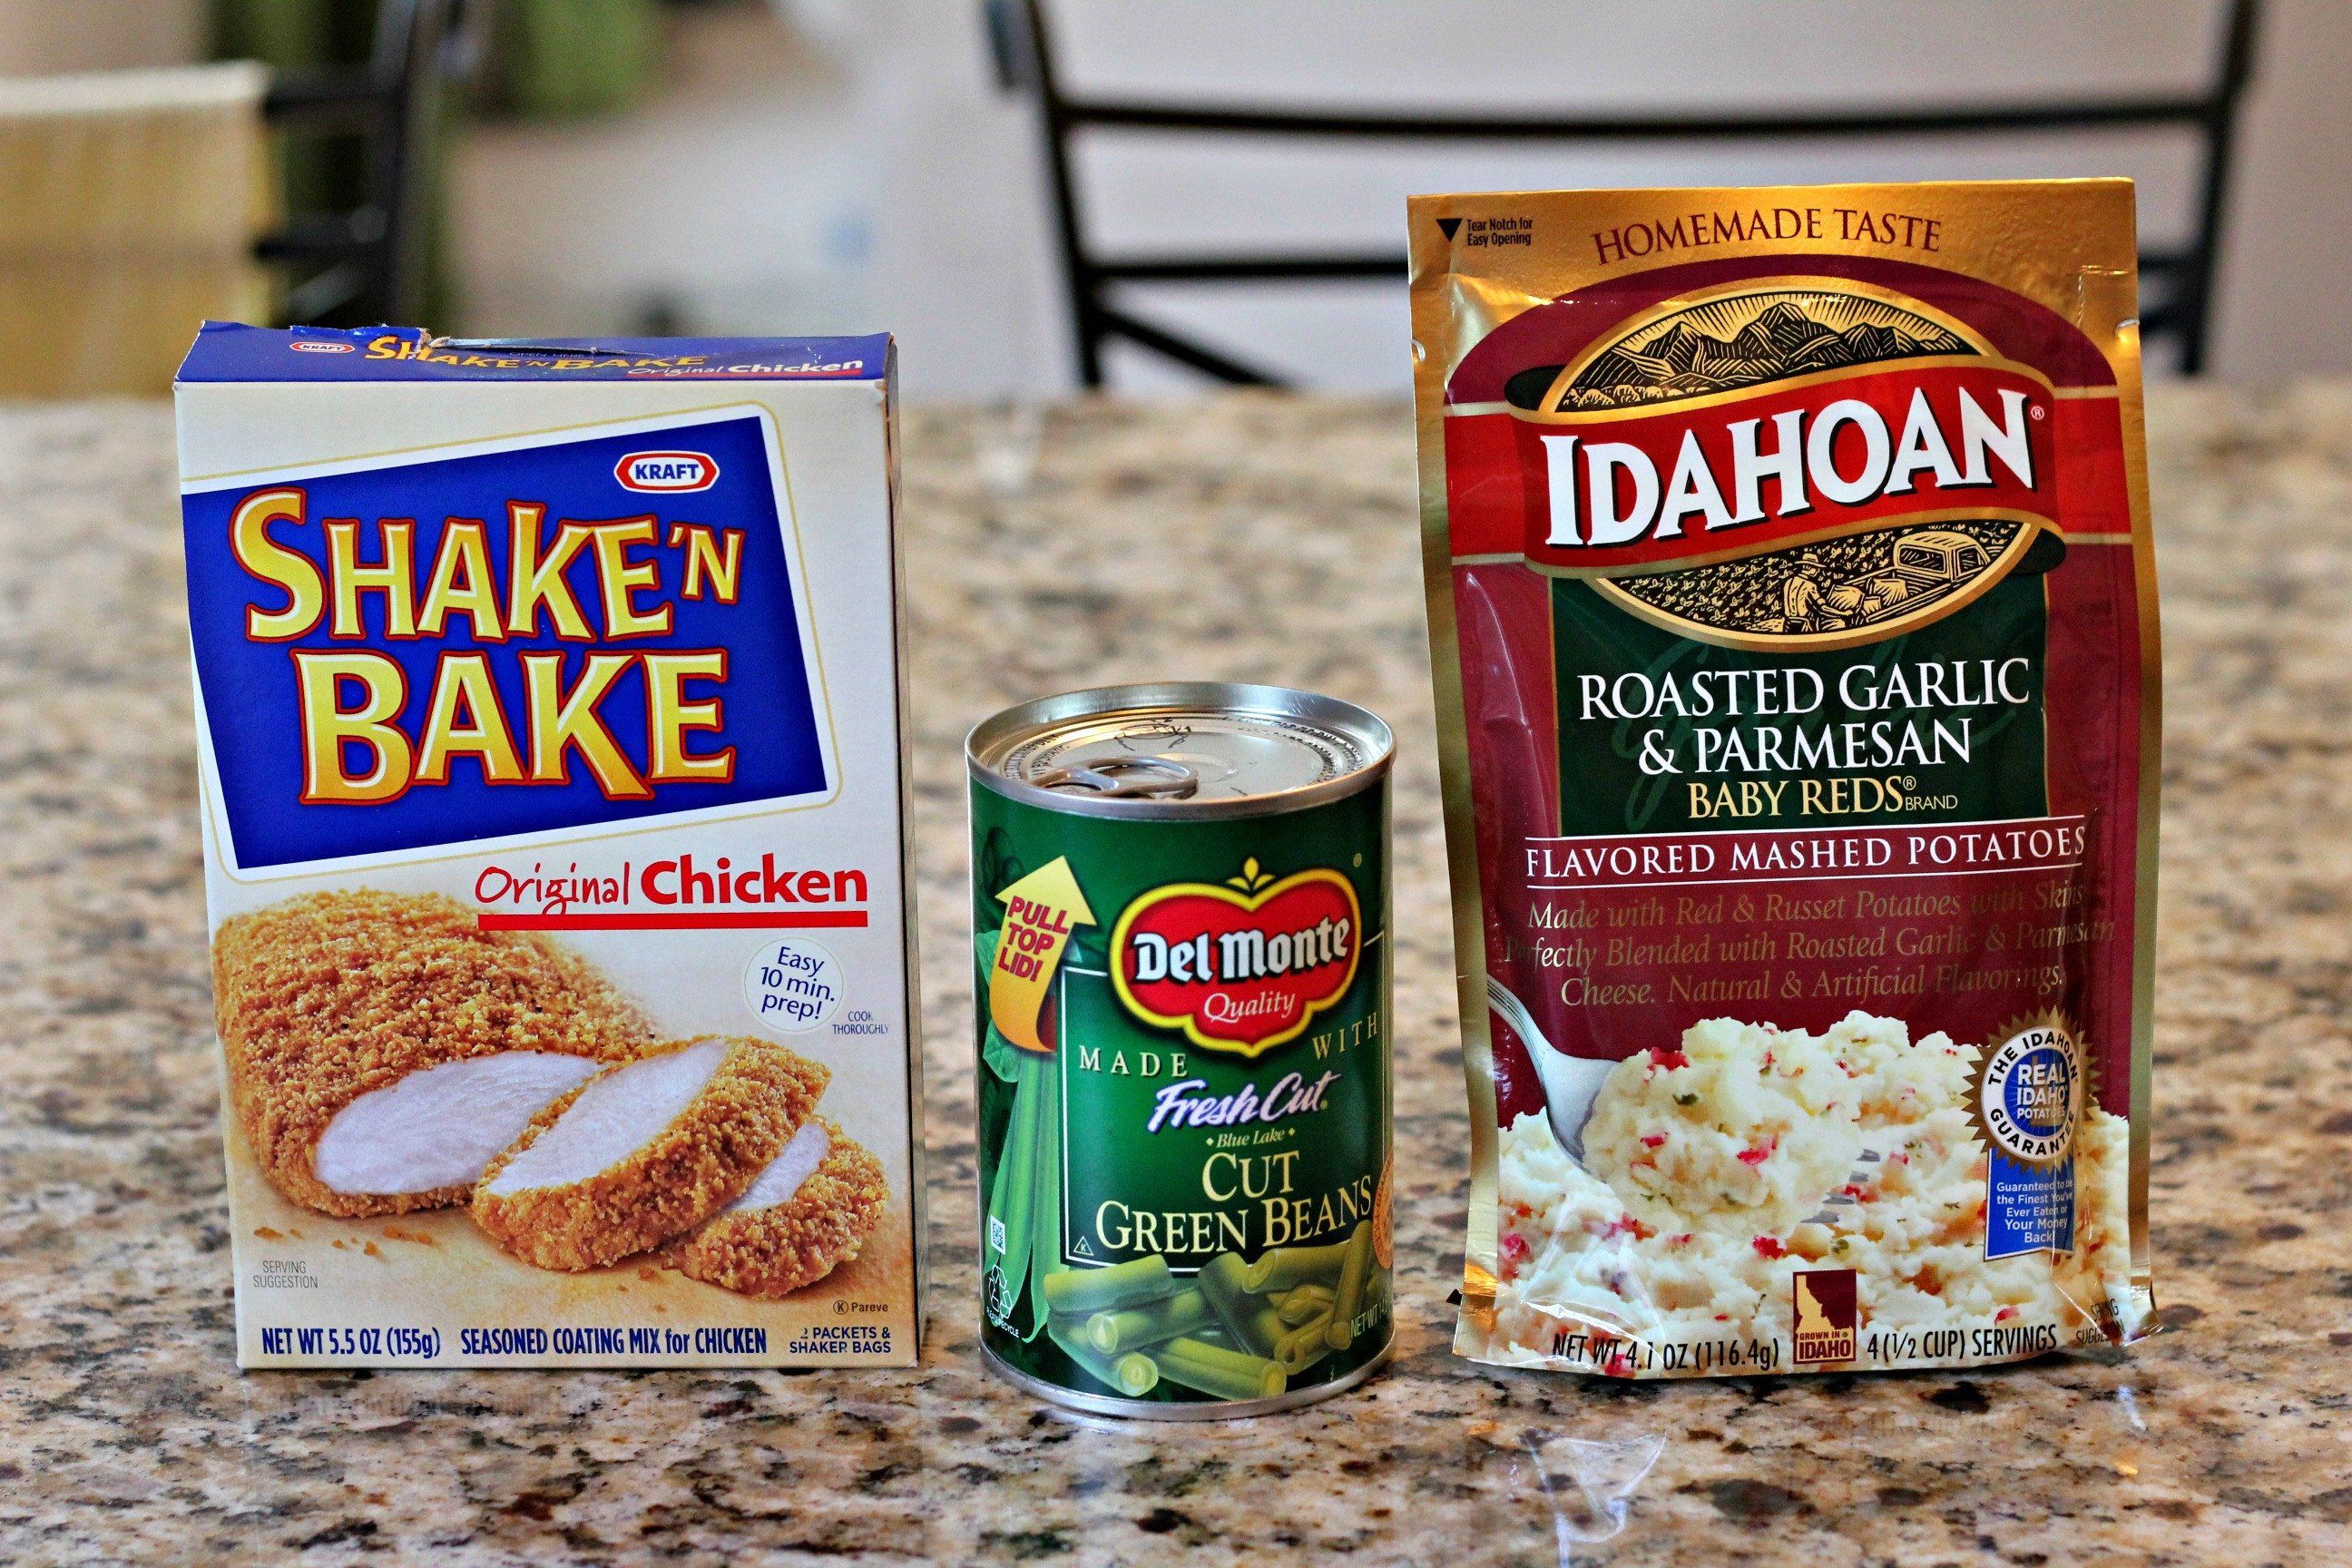 Shake n bake normal cooking of cereal or a pb j but im hoping to give you some ideas for make do meals that are maybe just a little bit more filling more delicious ccuart Choice Image